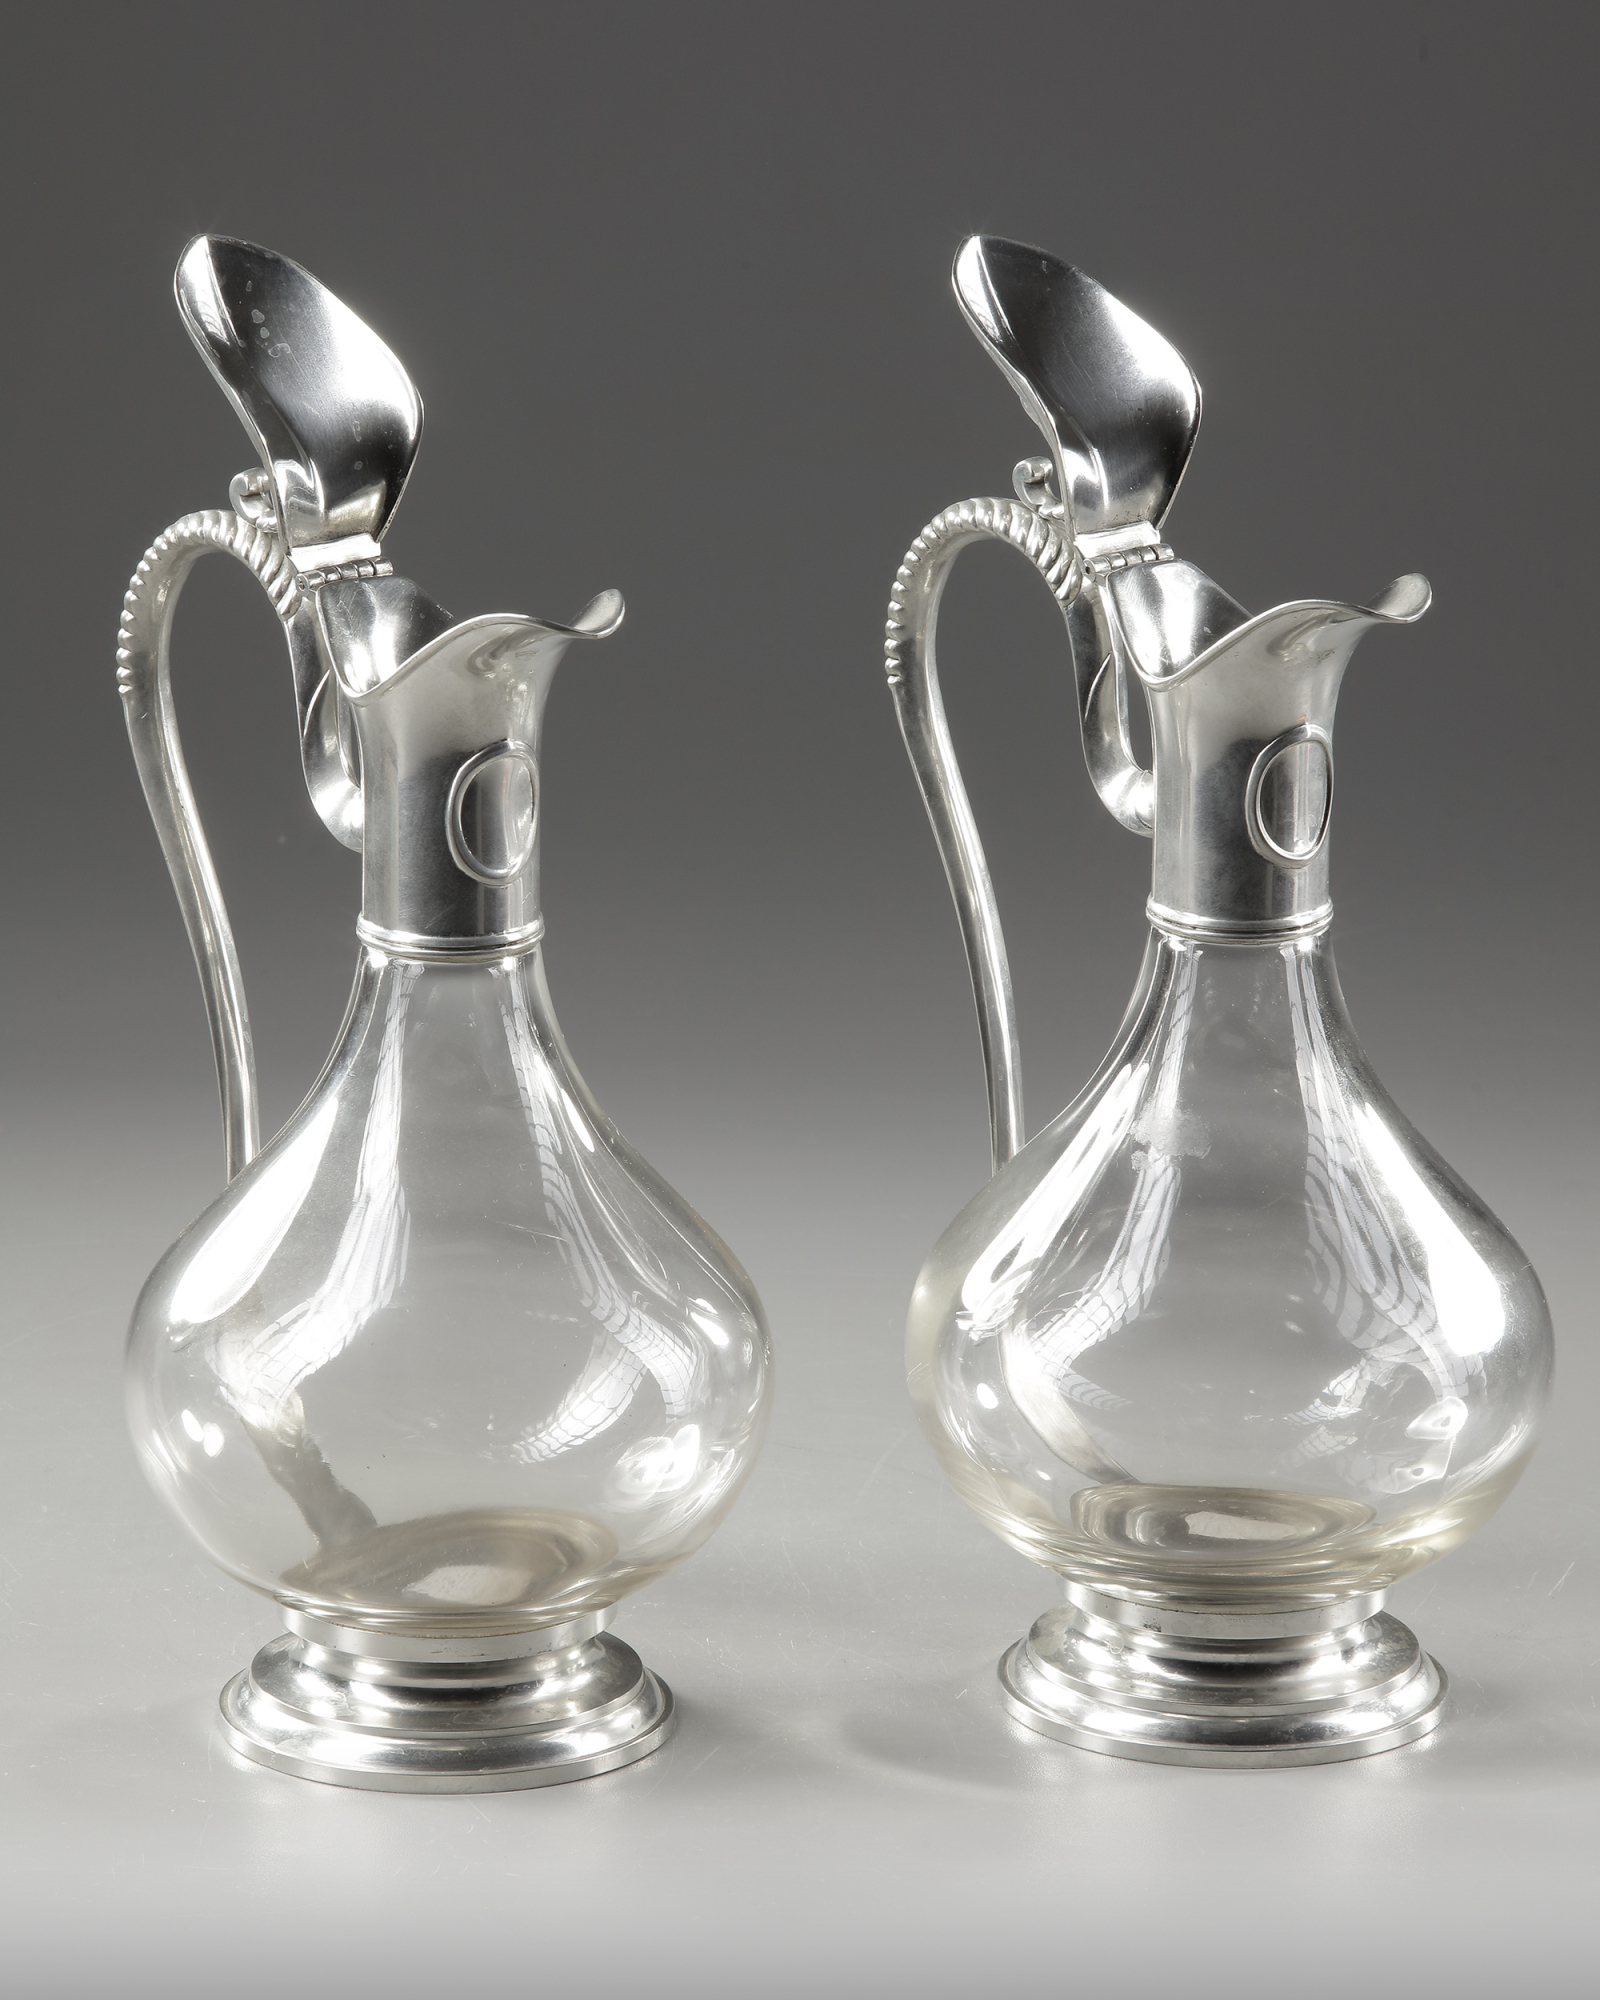 A PAIR OF CRYSTAL AND SILVER METAL EWERS, LATE 19TH CENTURY - Image 3 of 3